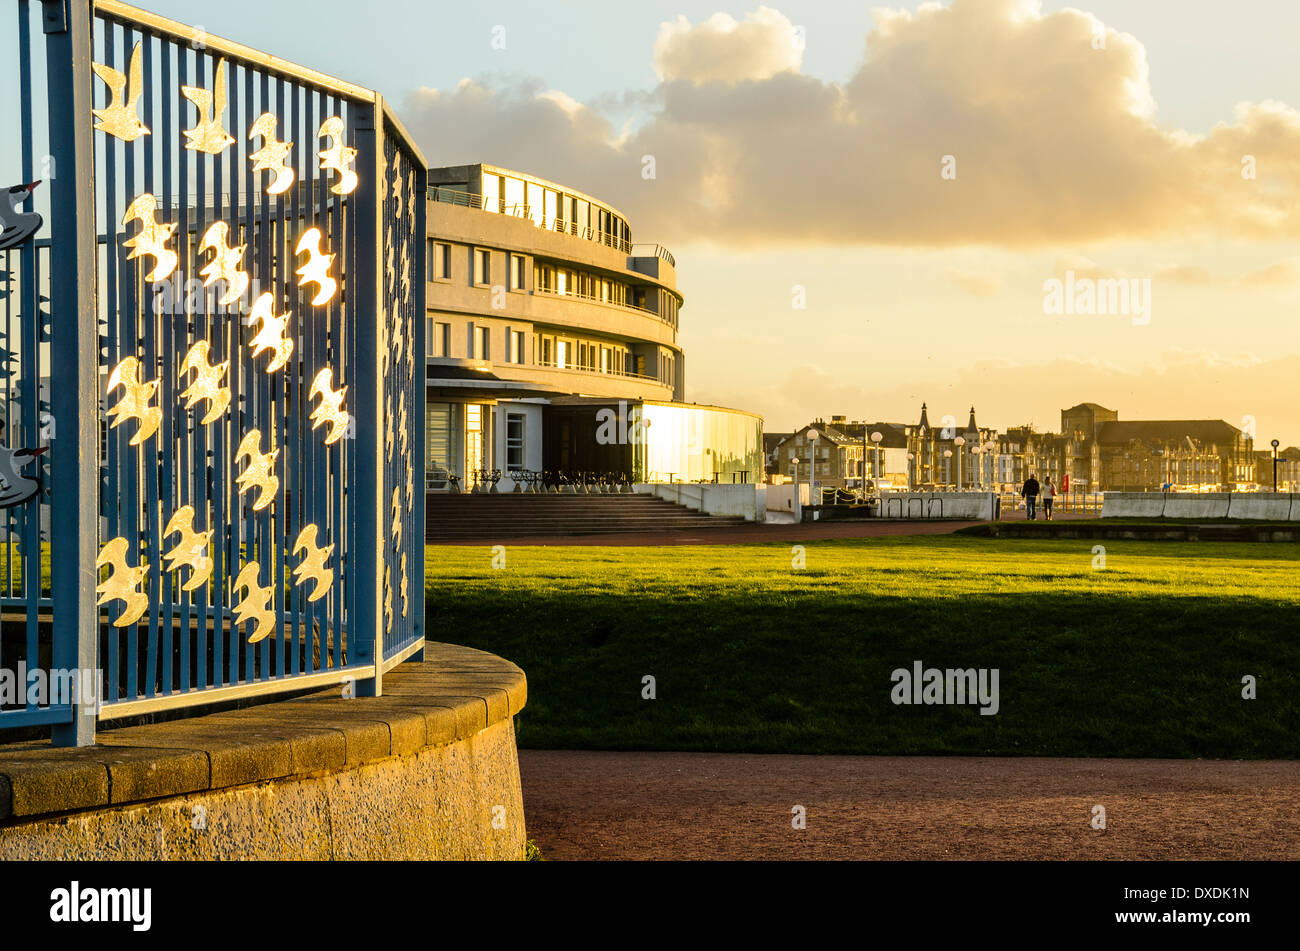 Bird railings and the Midland Hotel in Morecambe Lancashire England - Stock Image